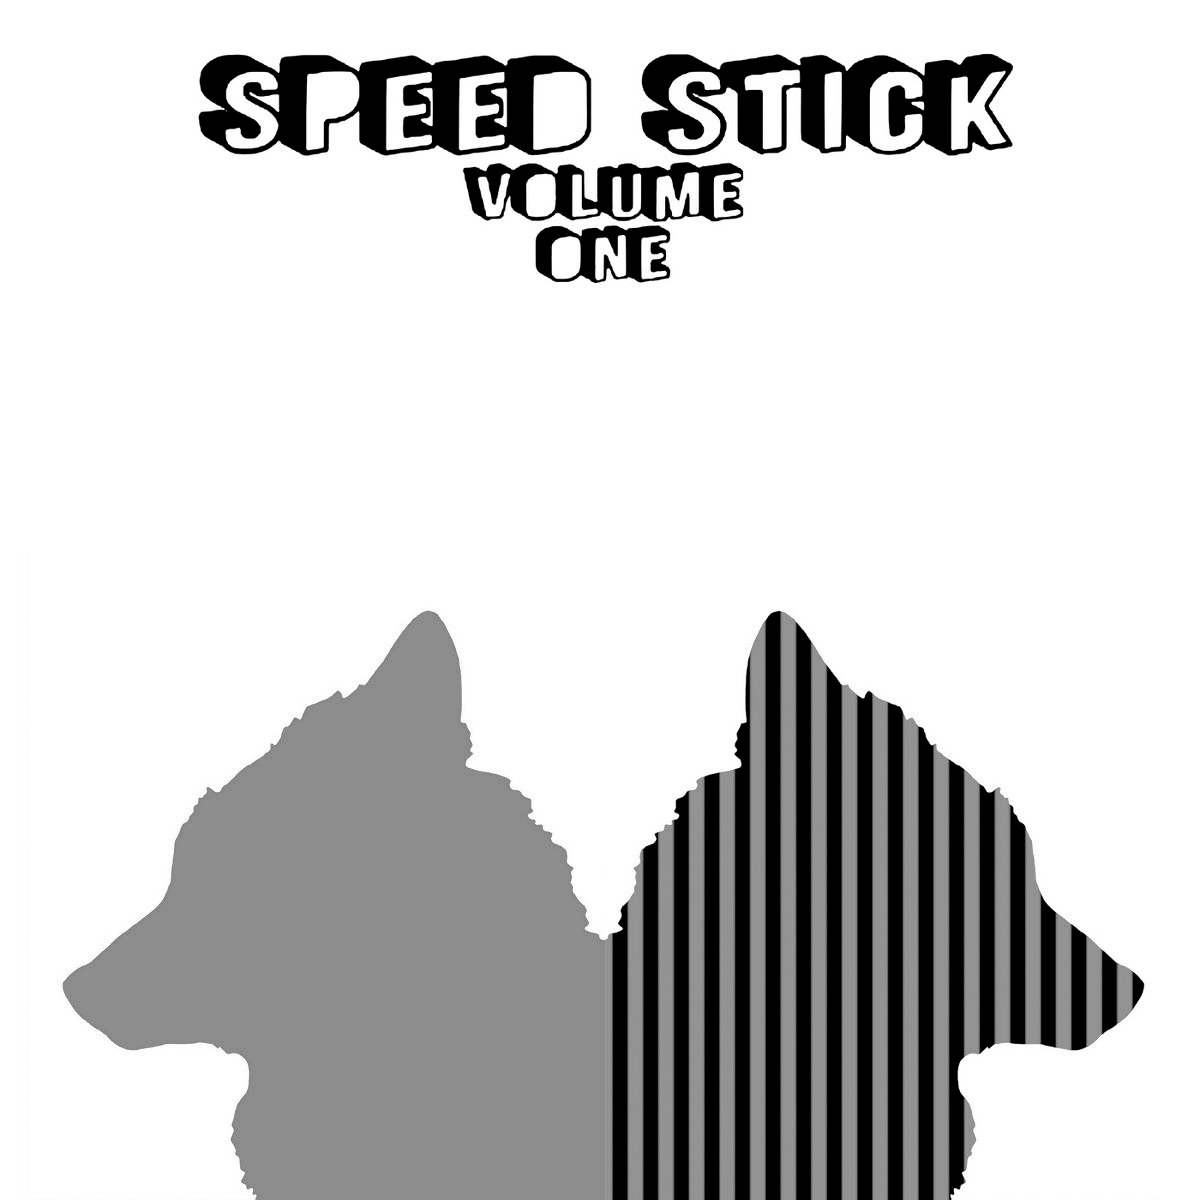 """Album cover for Volume One by Speed Stick. It's a grayscale illustration of the silhouette of two wolves mirroring and facing away from each other. The wolf on the left is light gray, and the wolf on the right is black and white with vertical stripes. At the top reads """"Speed Stick / Volume One"""" in letters meant to look 3-dimensional. Artwork by Charles Chace."""